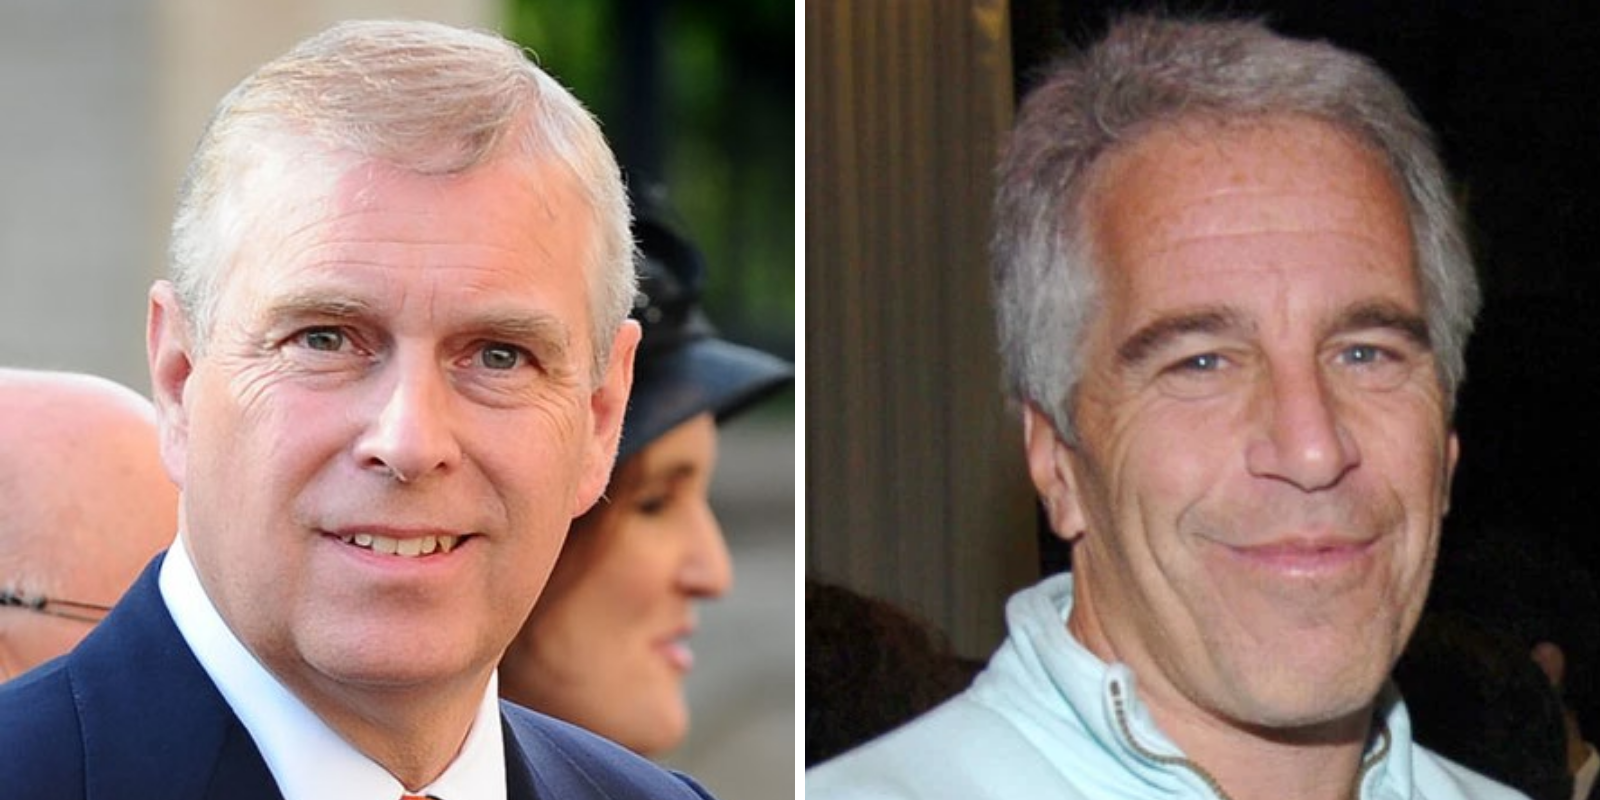 Prince Andrew stepping down from public duties following Epstein accusations